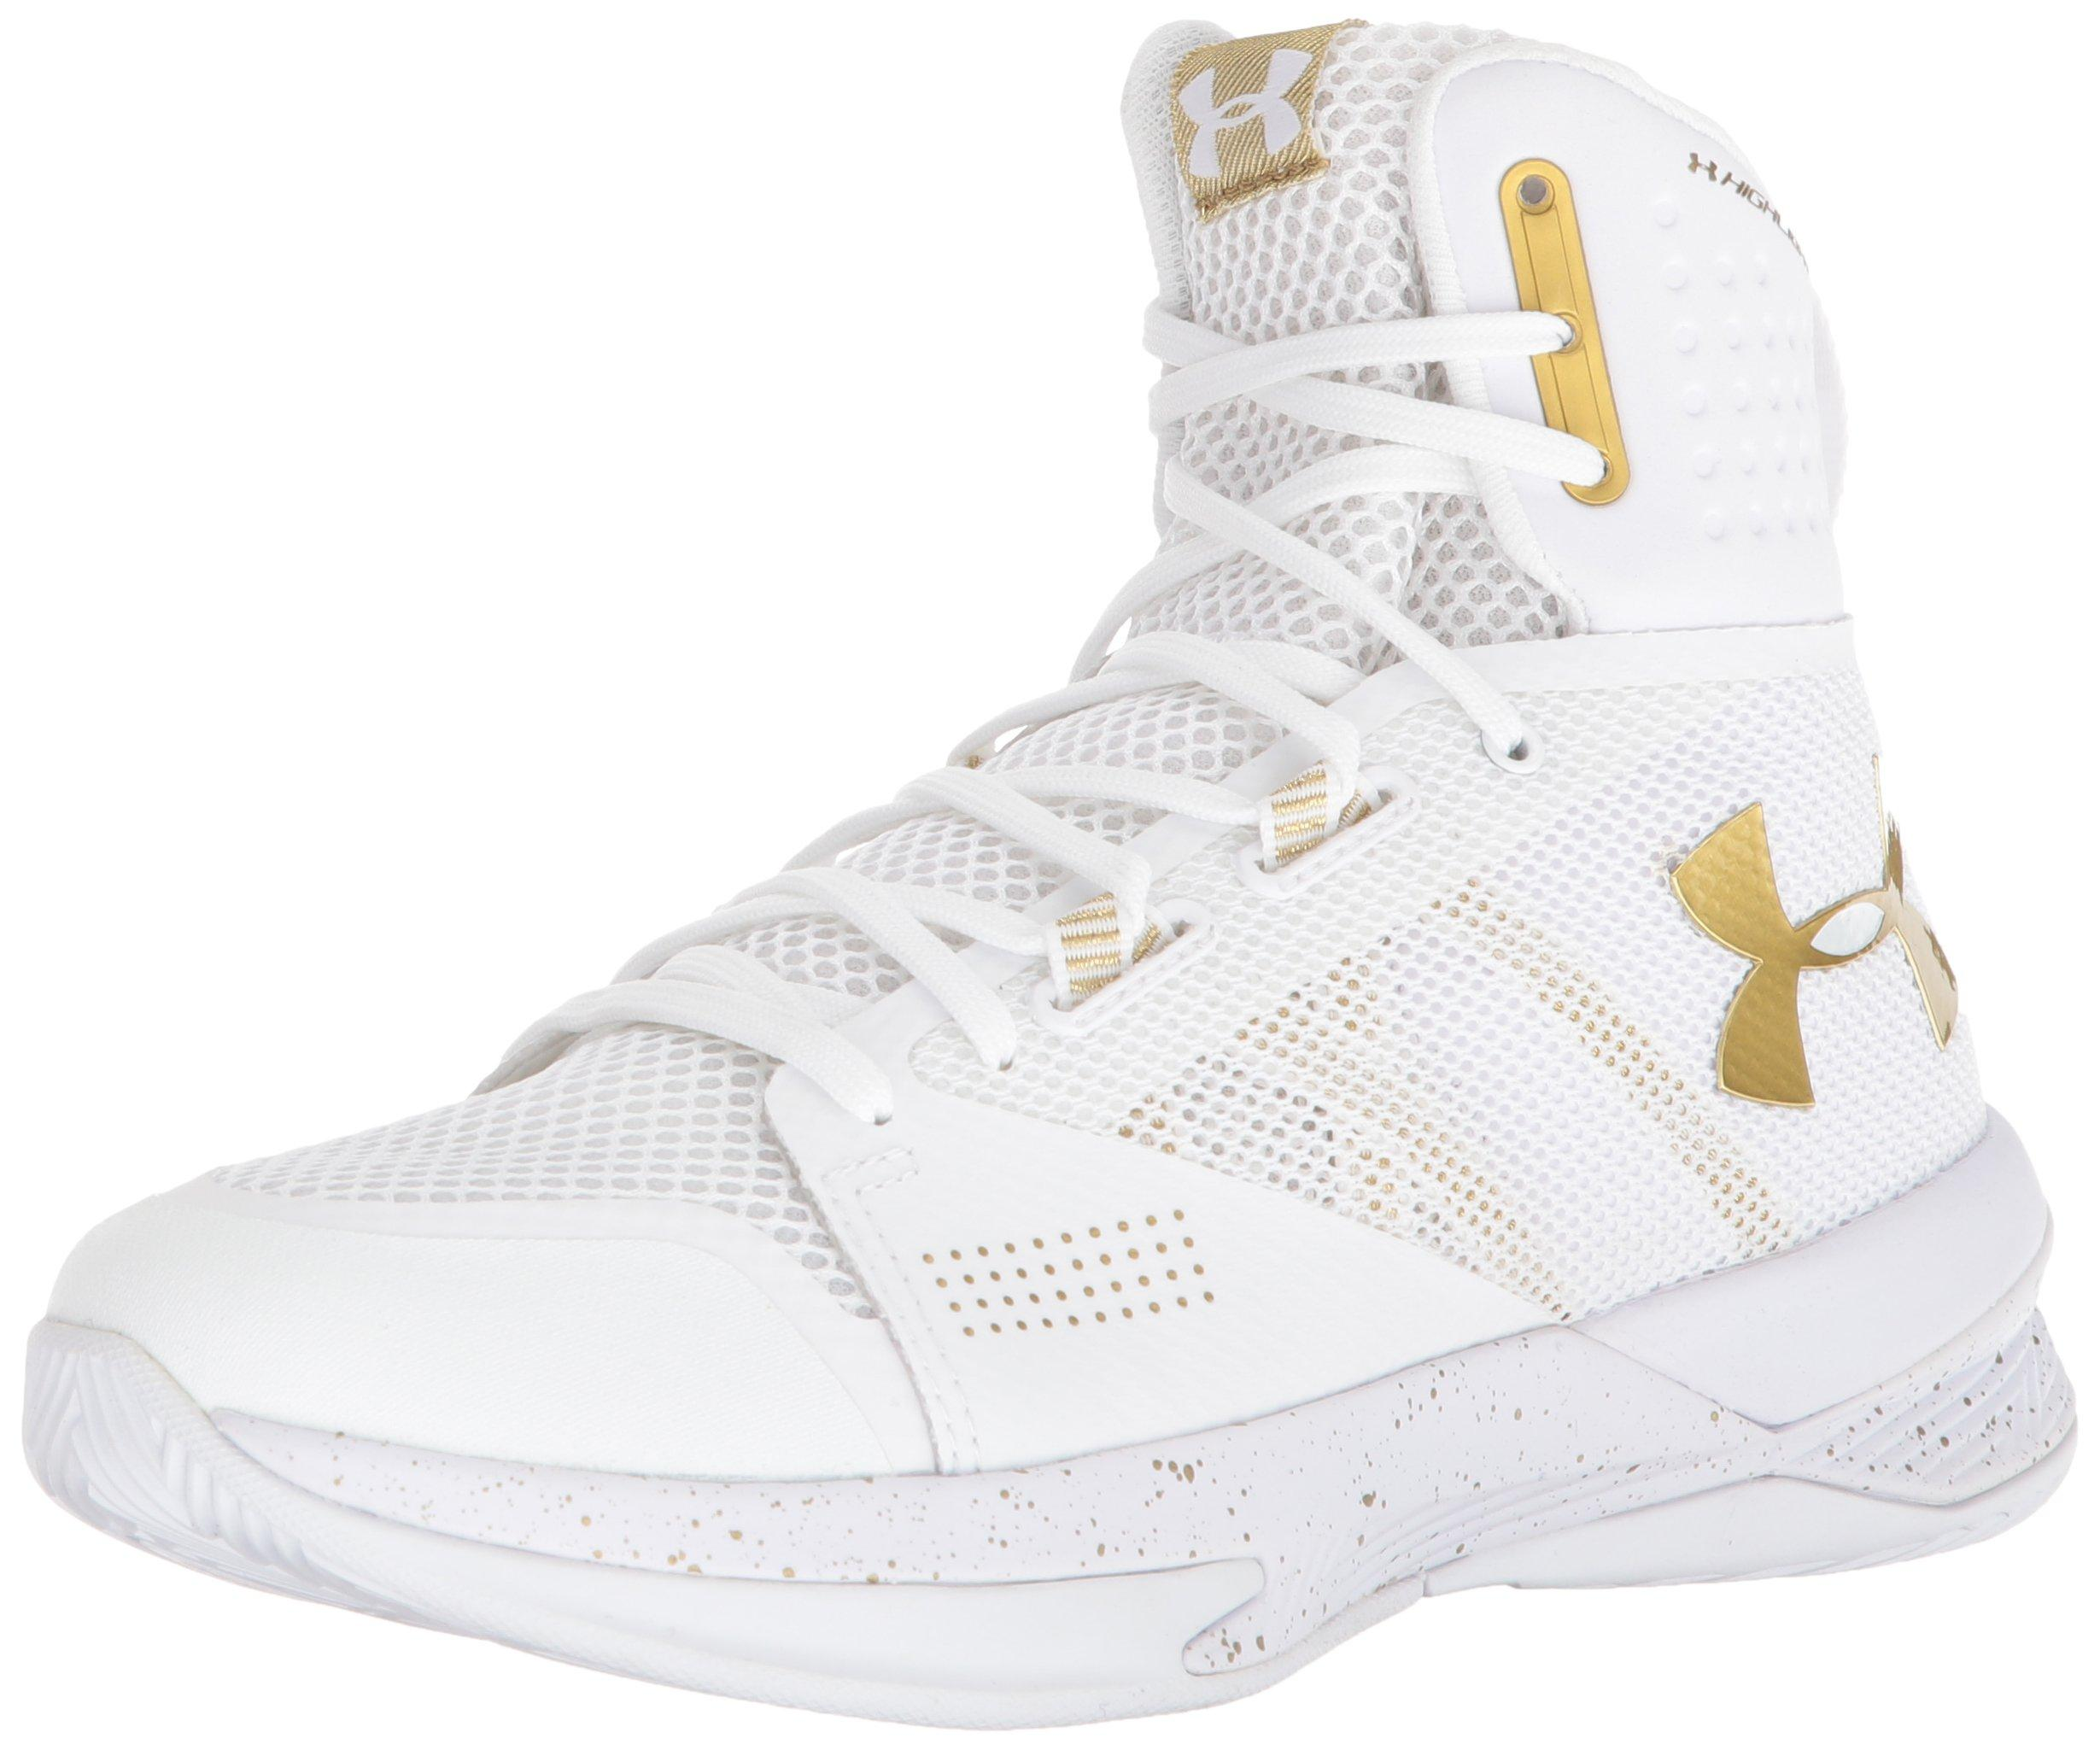 Under Armour Highlight Ace Volleyball